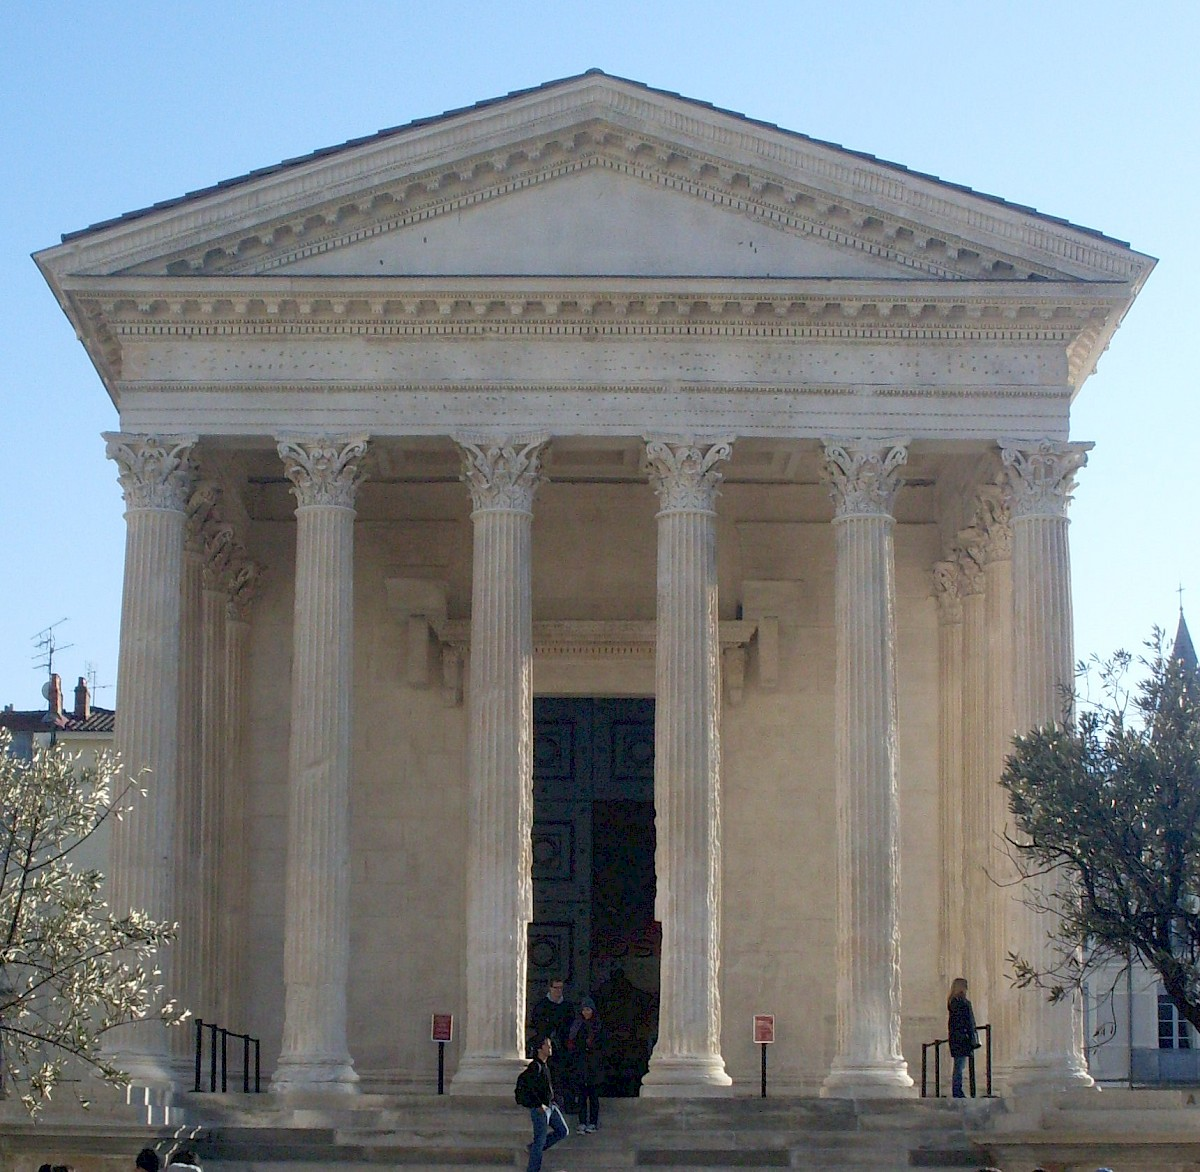 Maison Carrée, additional view